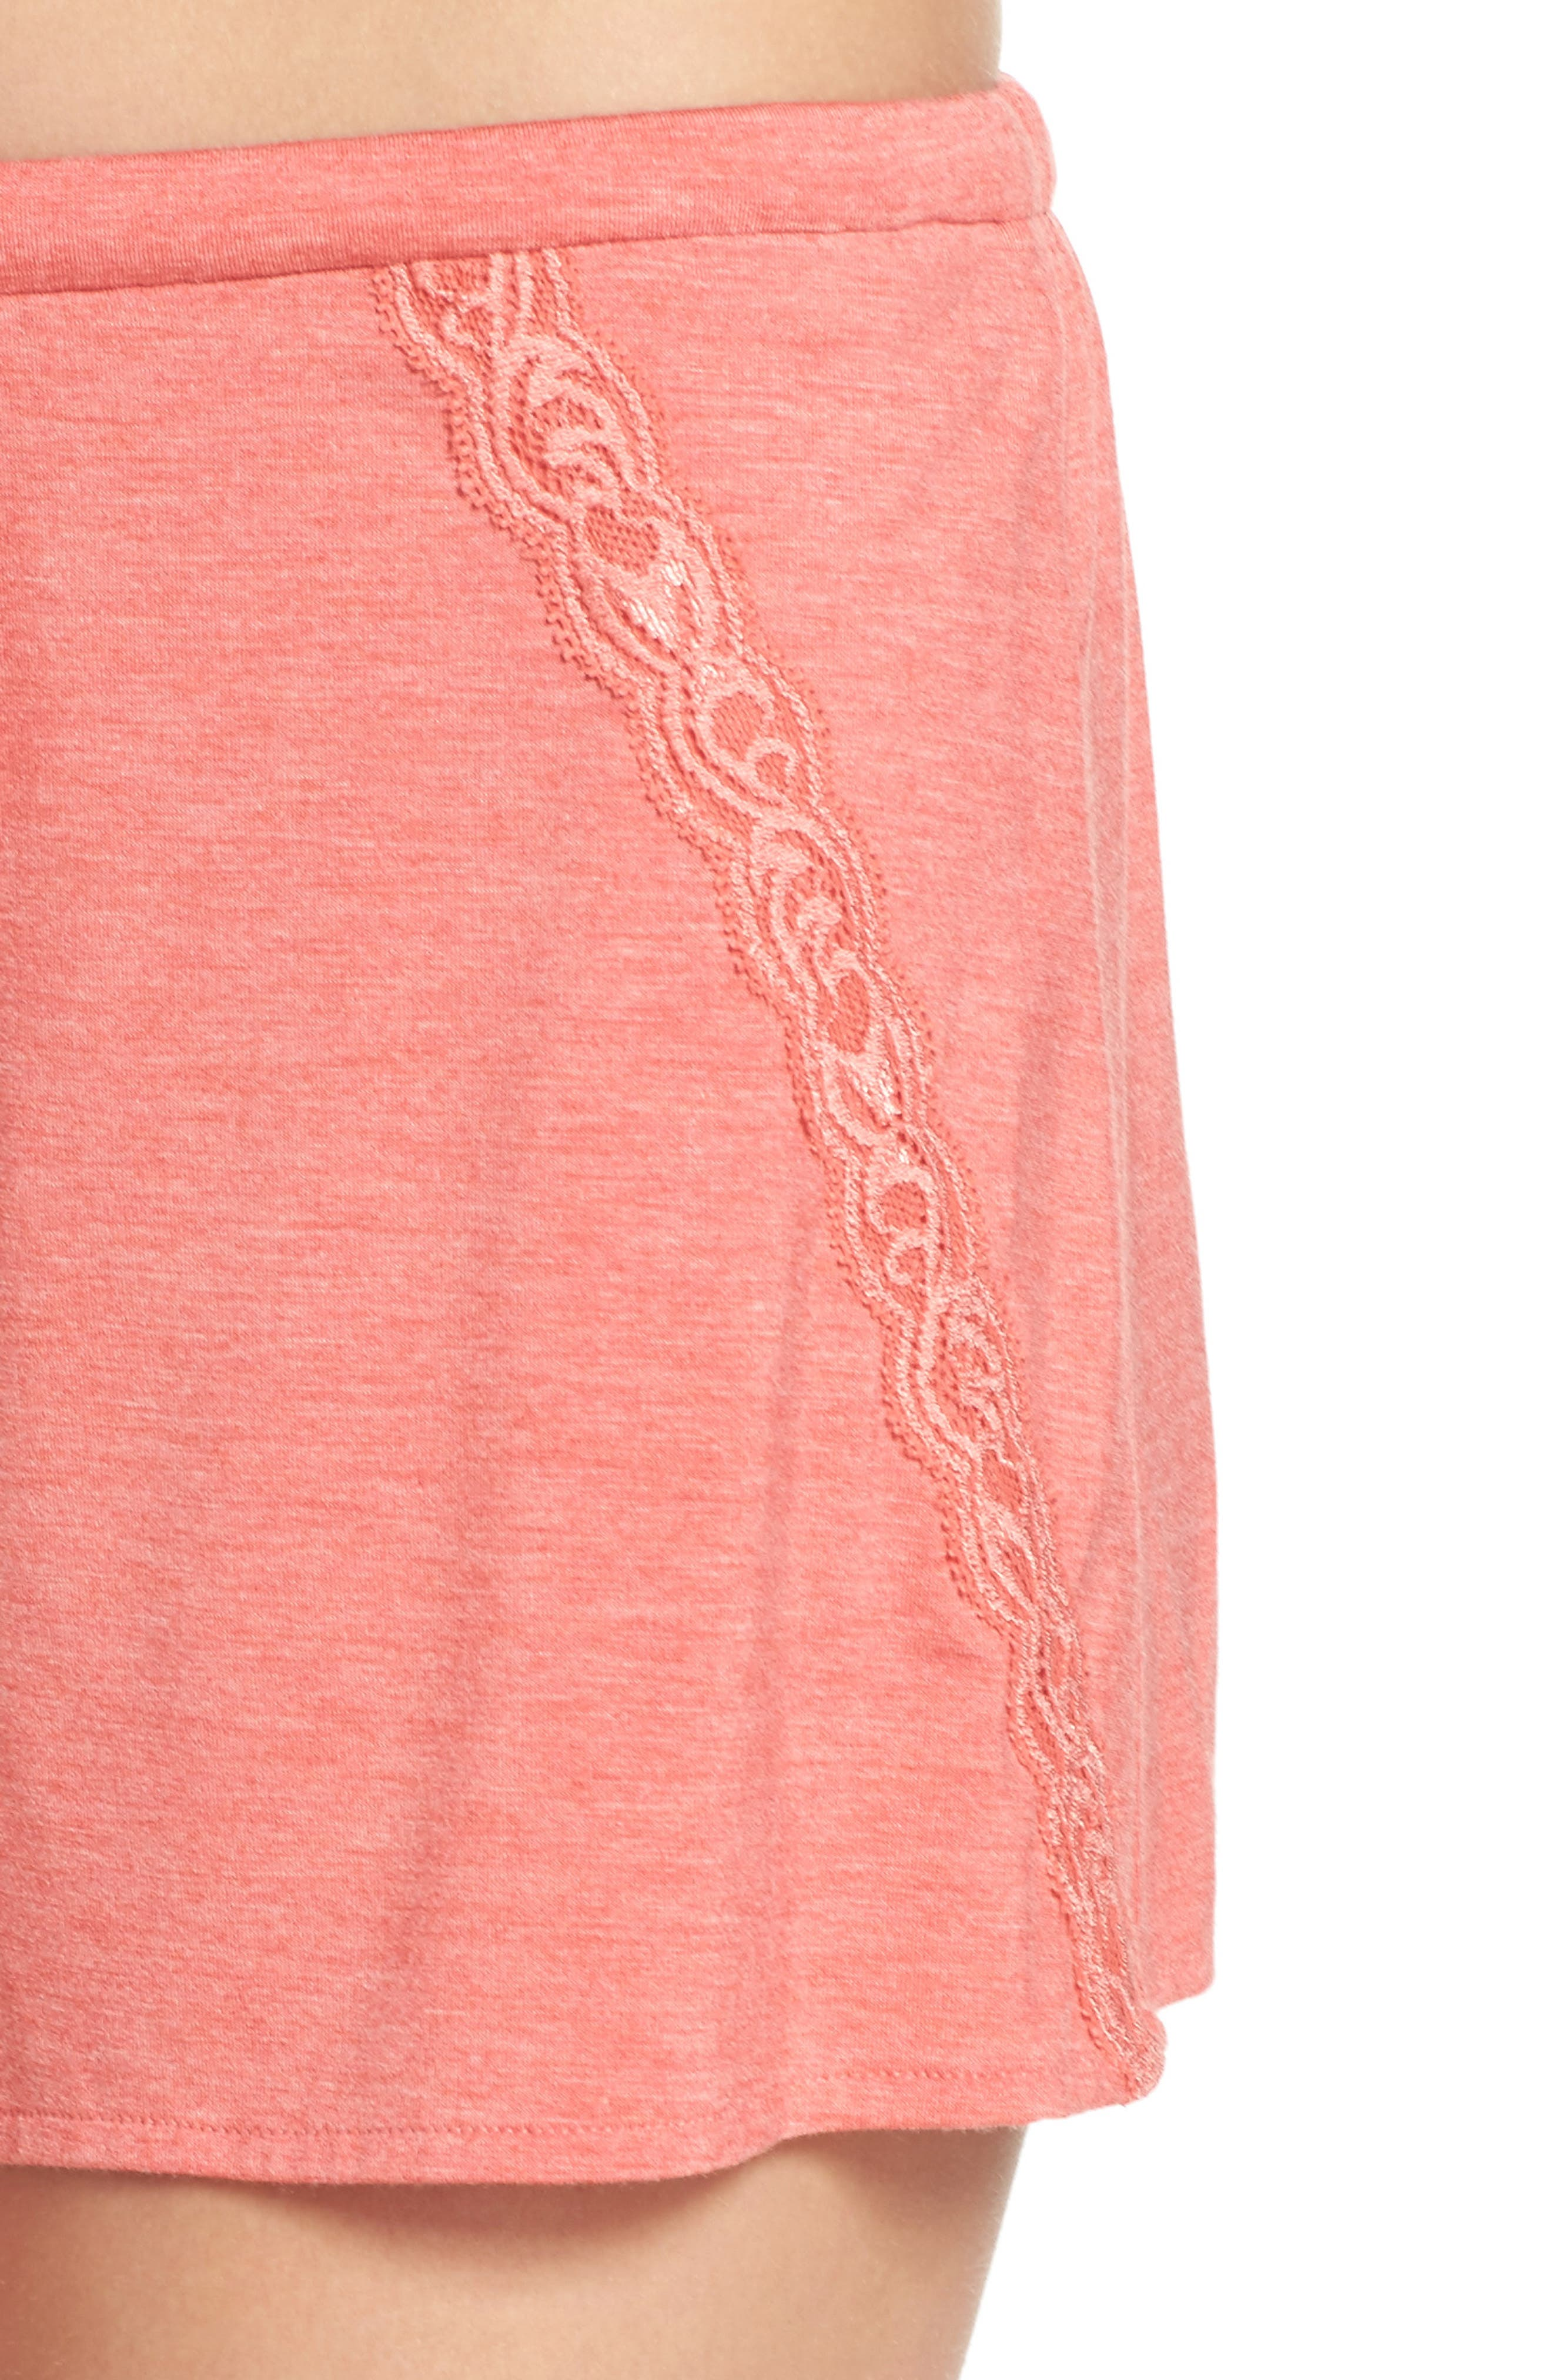 Feathers Essential Pajama Shorts,                             Alternate thumbnail 8, color,